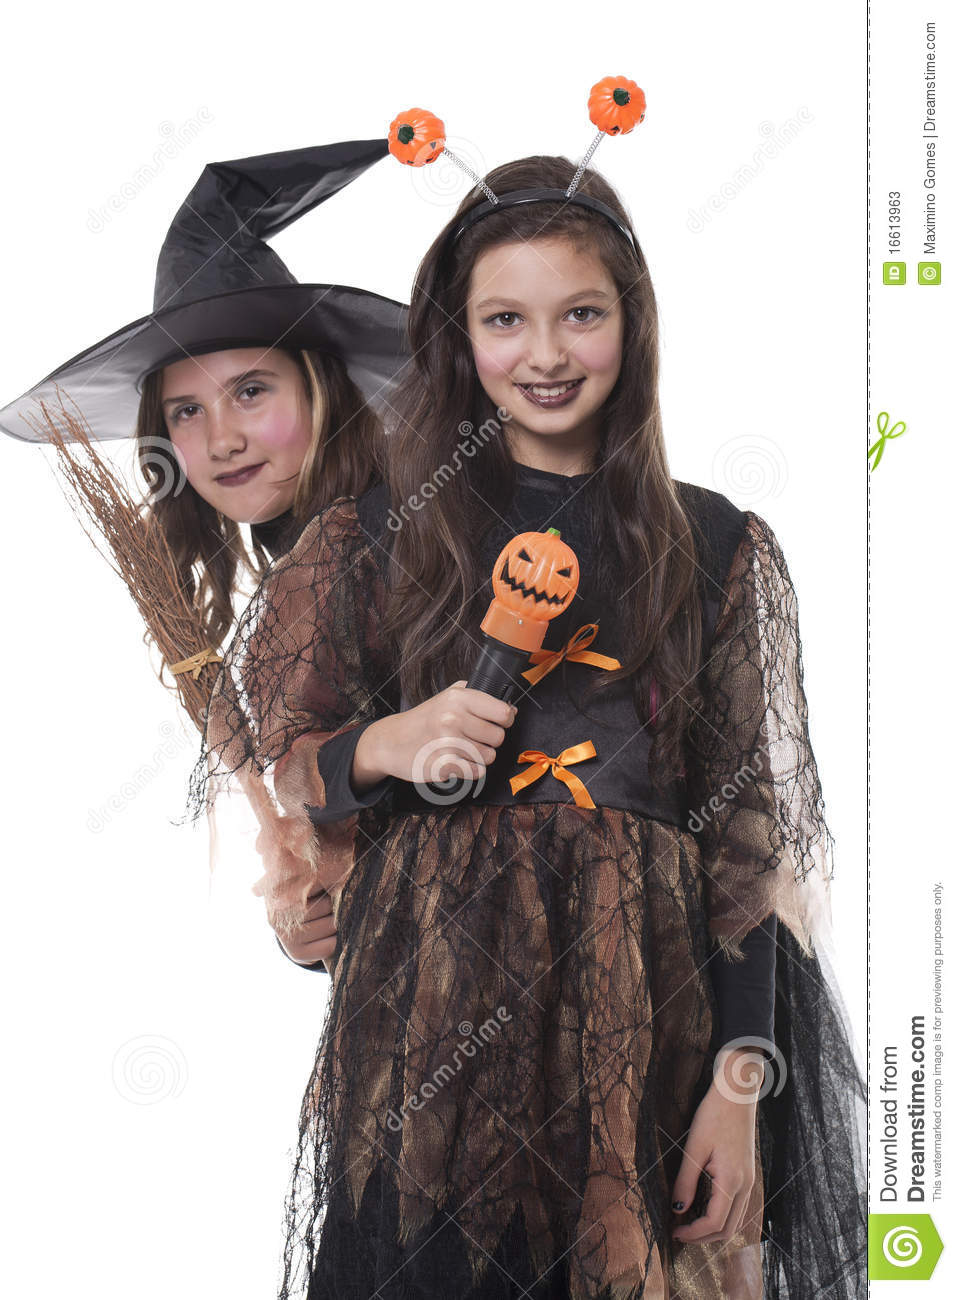 download two girls in halloween costumes stock image image of cheerful pagan 16613963